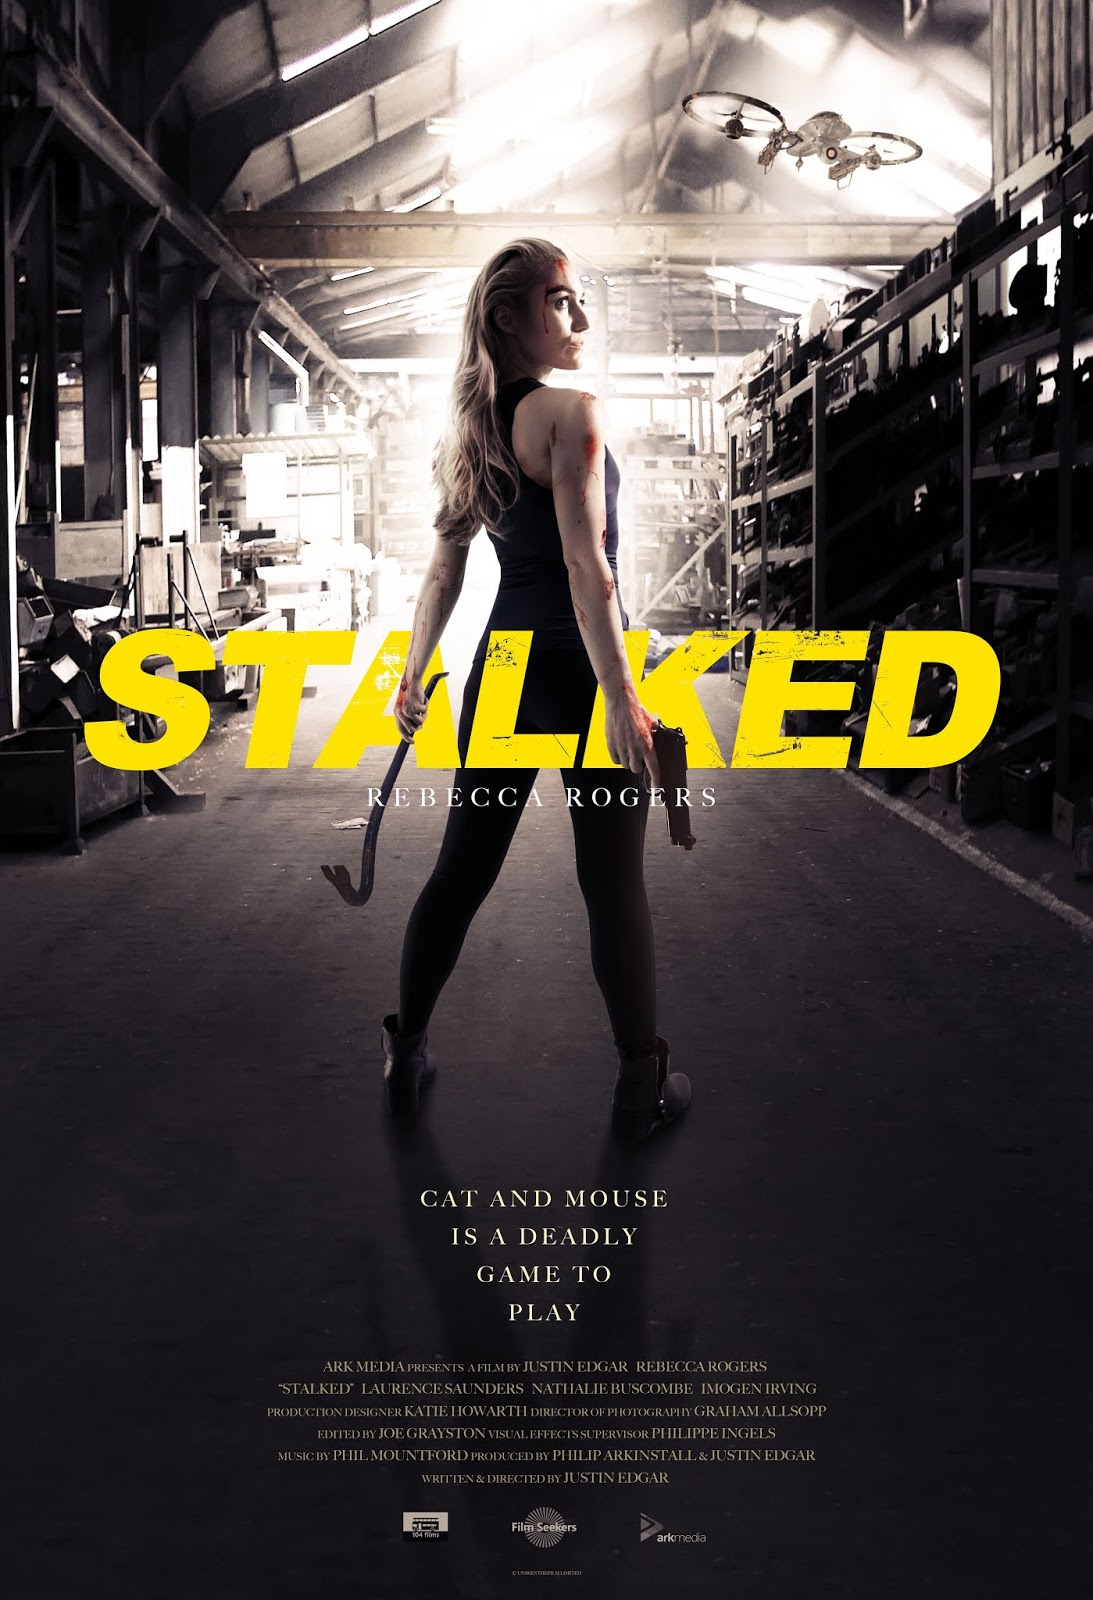 Stalked (2019) starring Rebecca Rogers | Poster